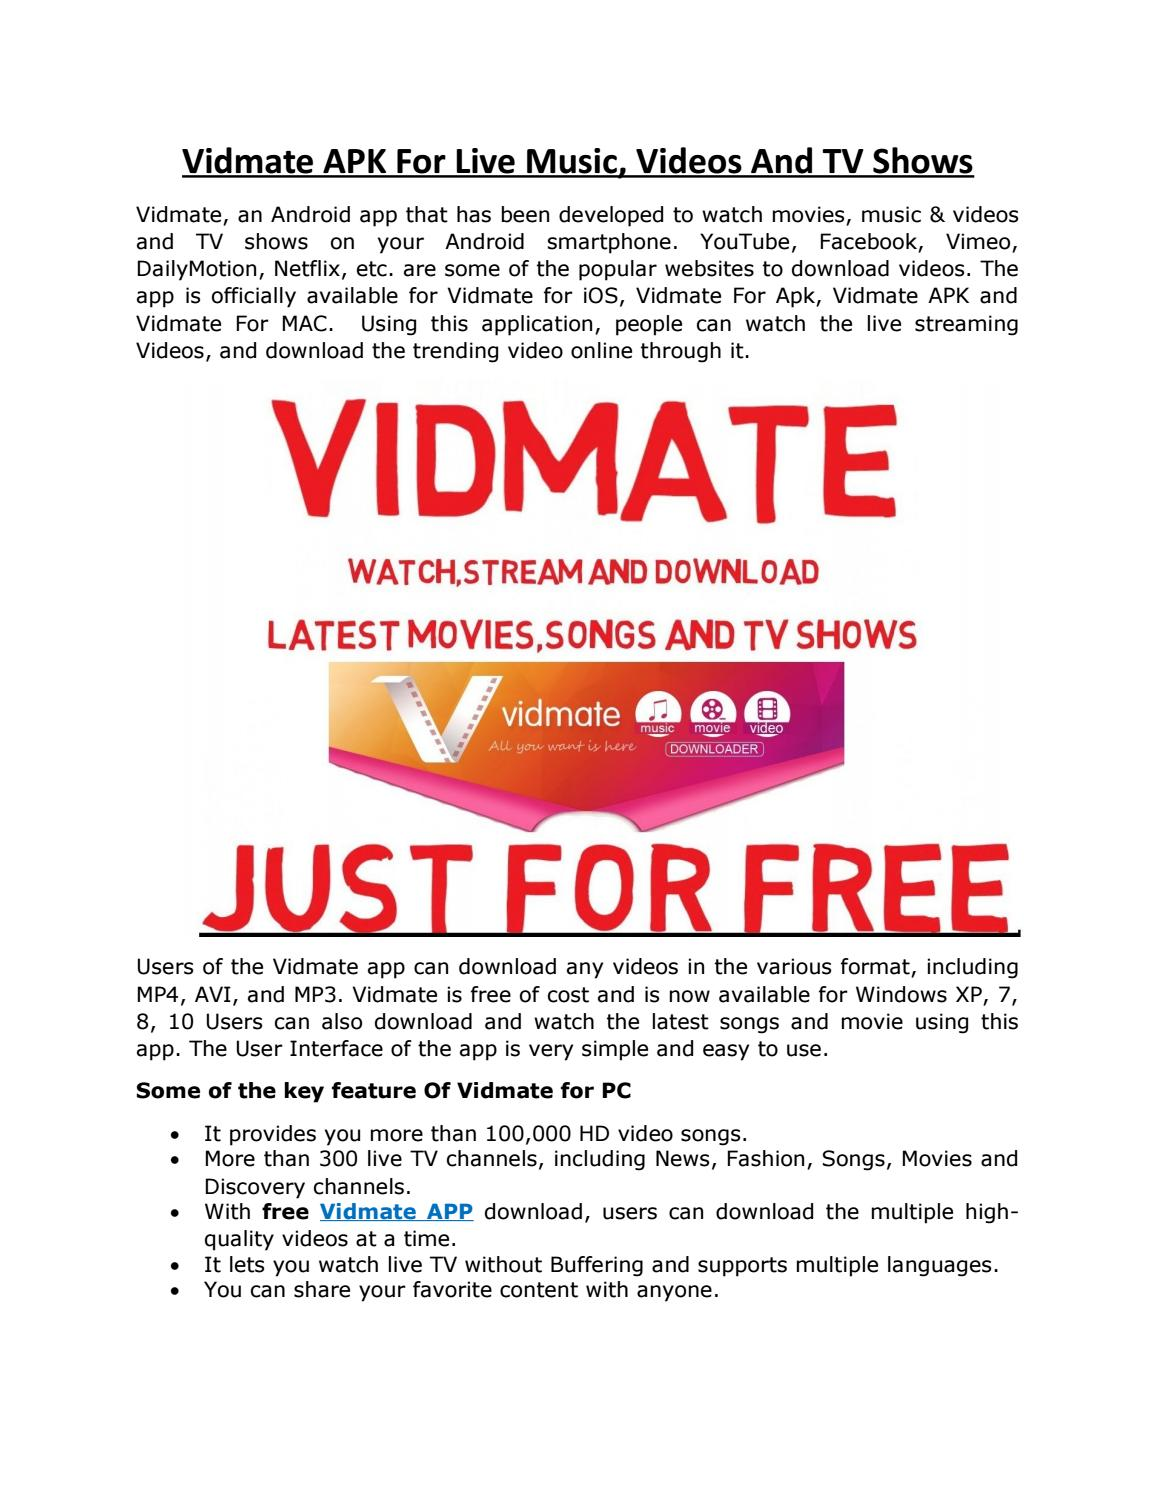 Vidmate APK For Live Music, Videos And TV Shows by